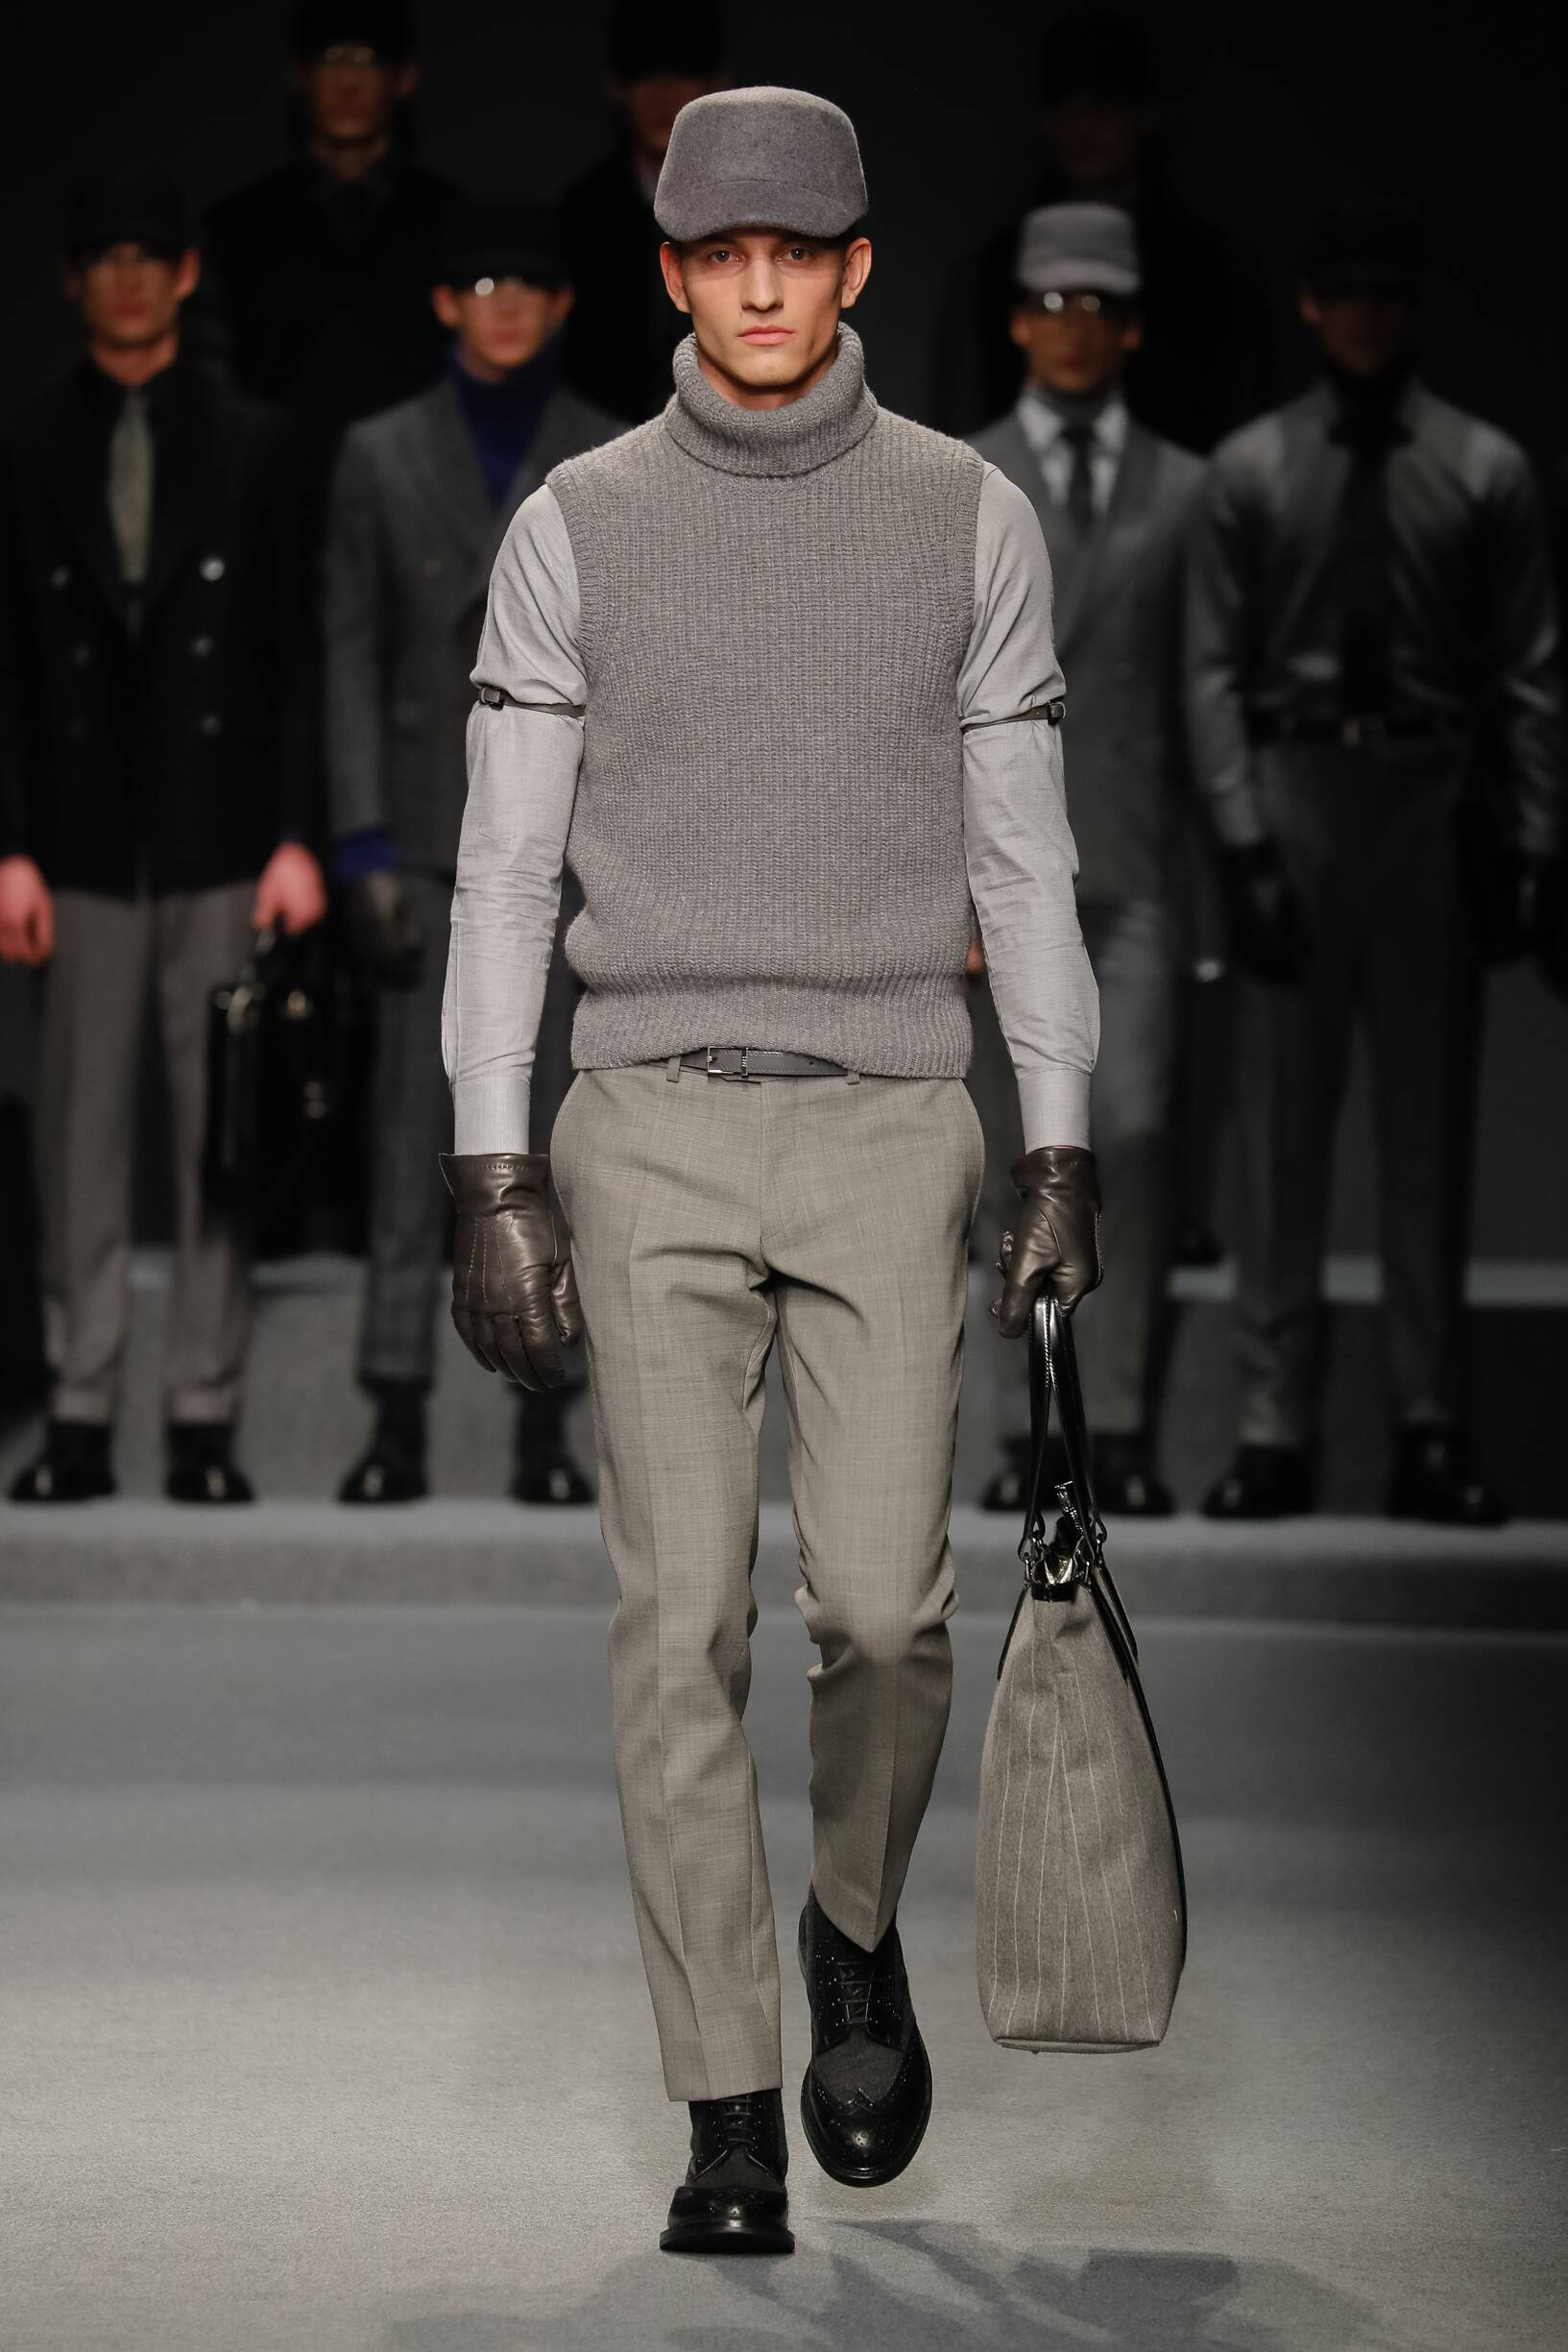 Fashion Man Model Daks Catwalk